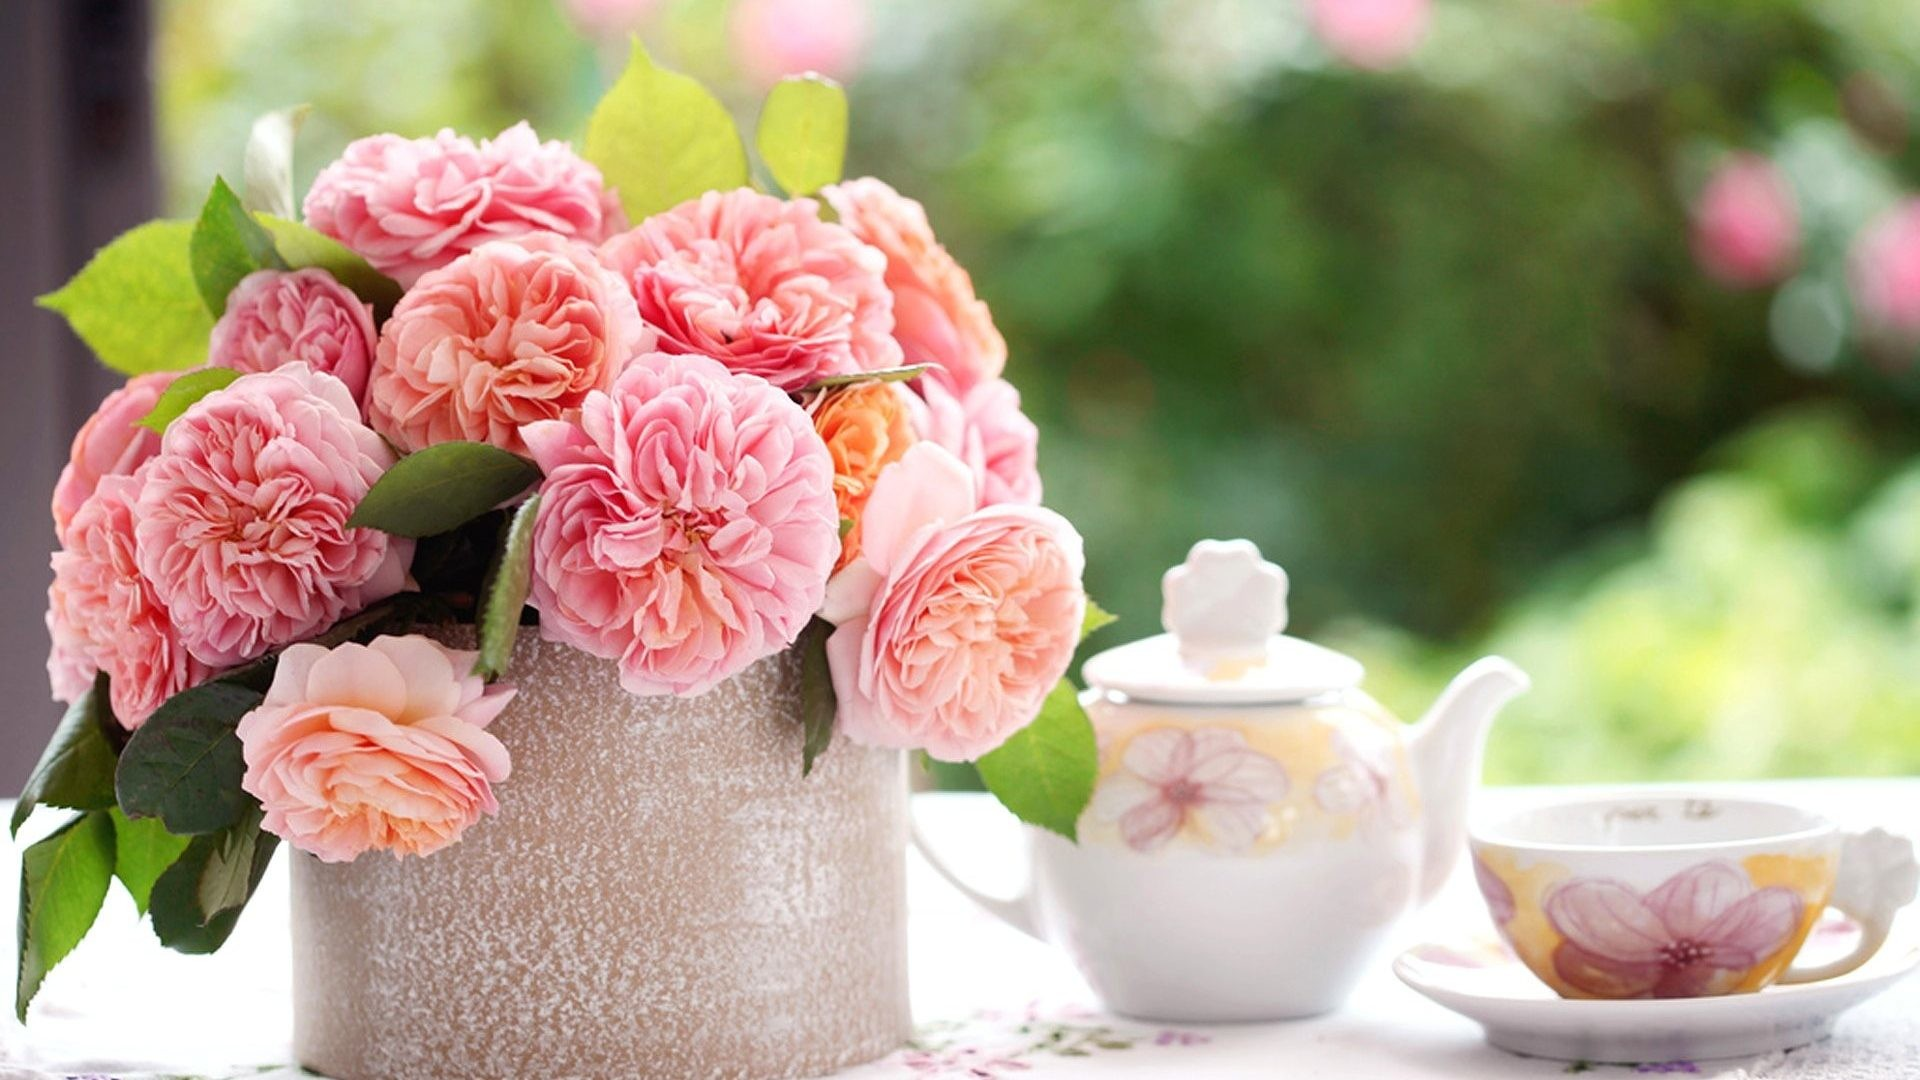 1920x1080 Flowers - Bokeh Blurring Pink Teapot Morning Flower Rose Photo Of  Background Images Nature for HD